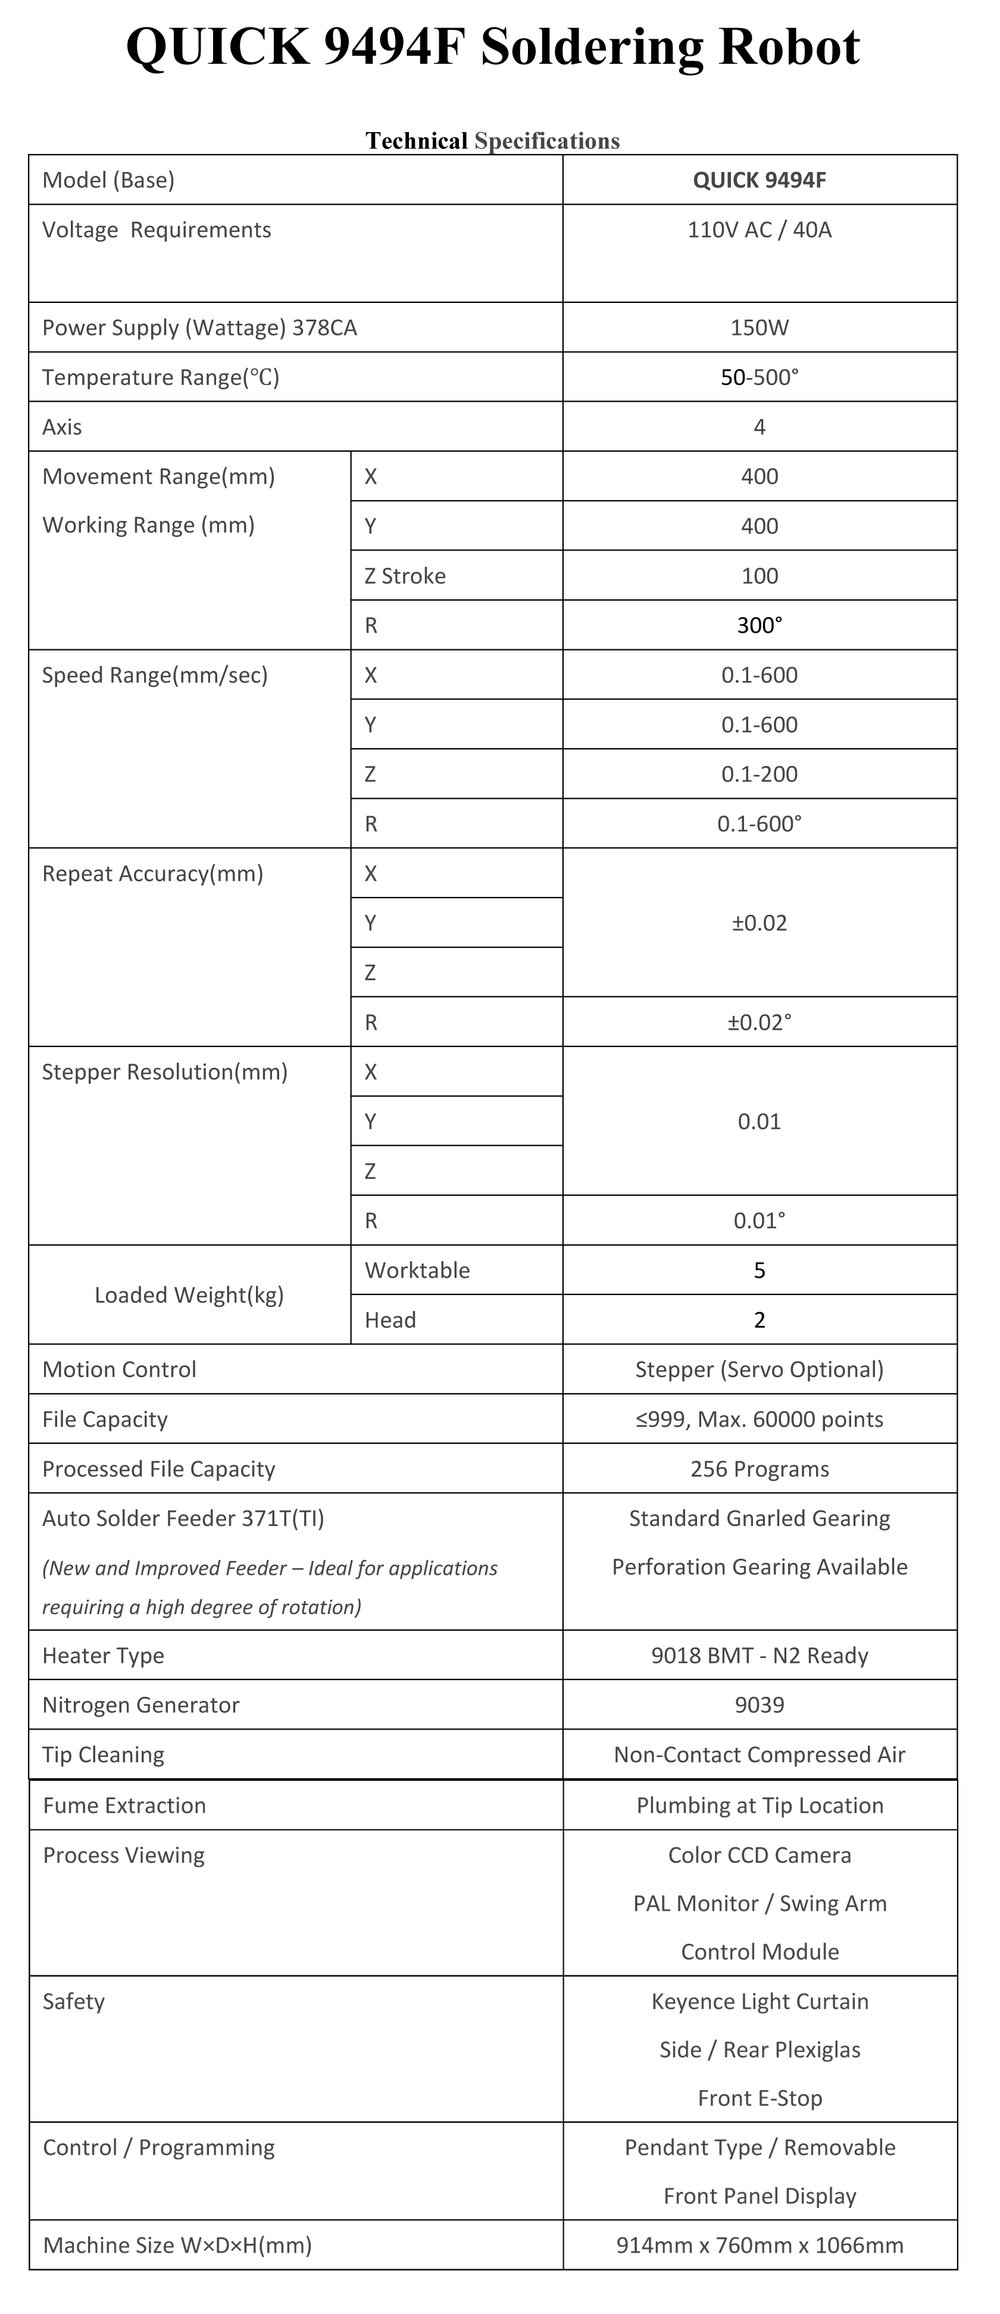 9494F Technical Specifications.jpg